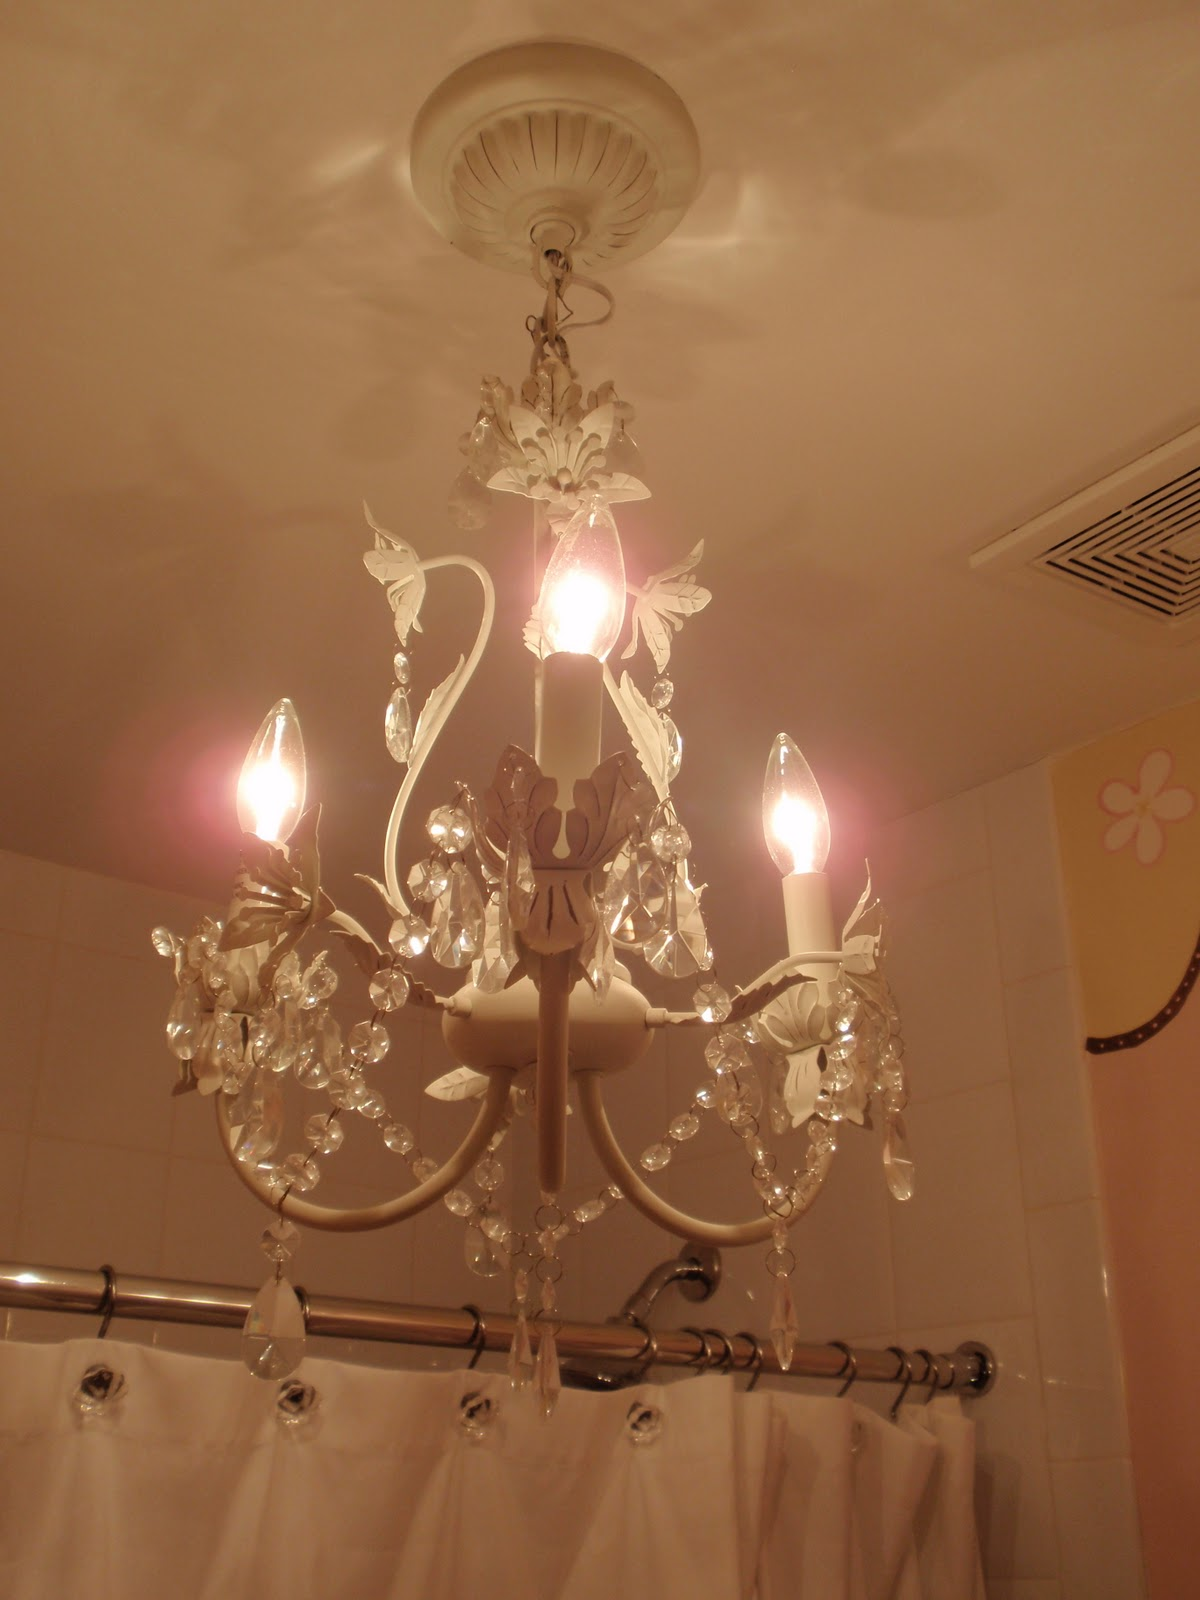 DIY by Design I have a thing for chandeliers